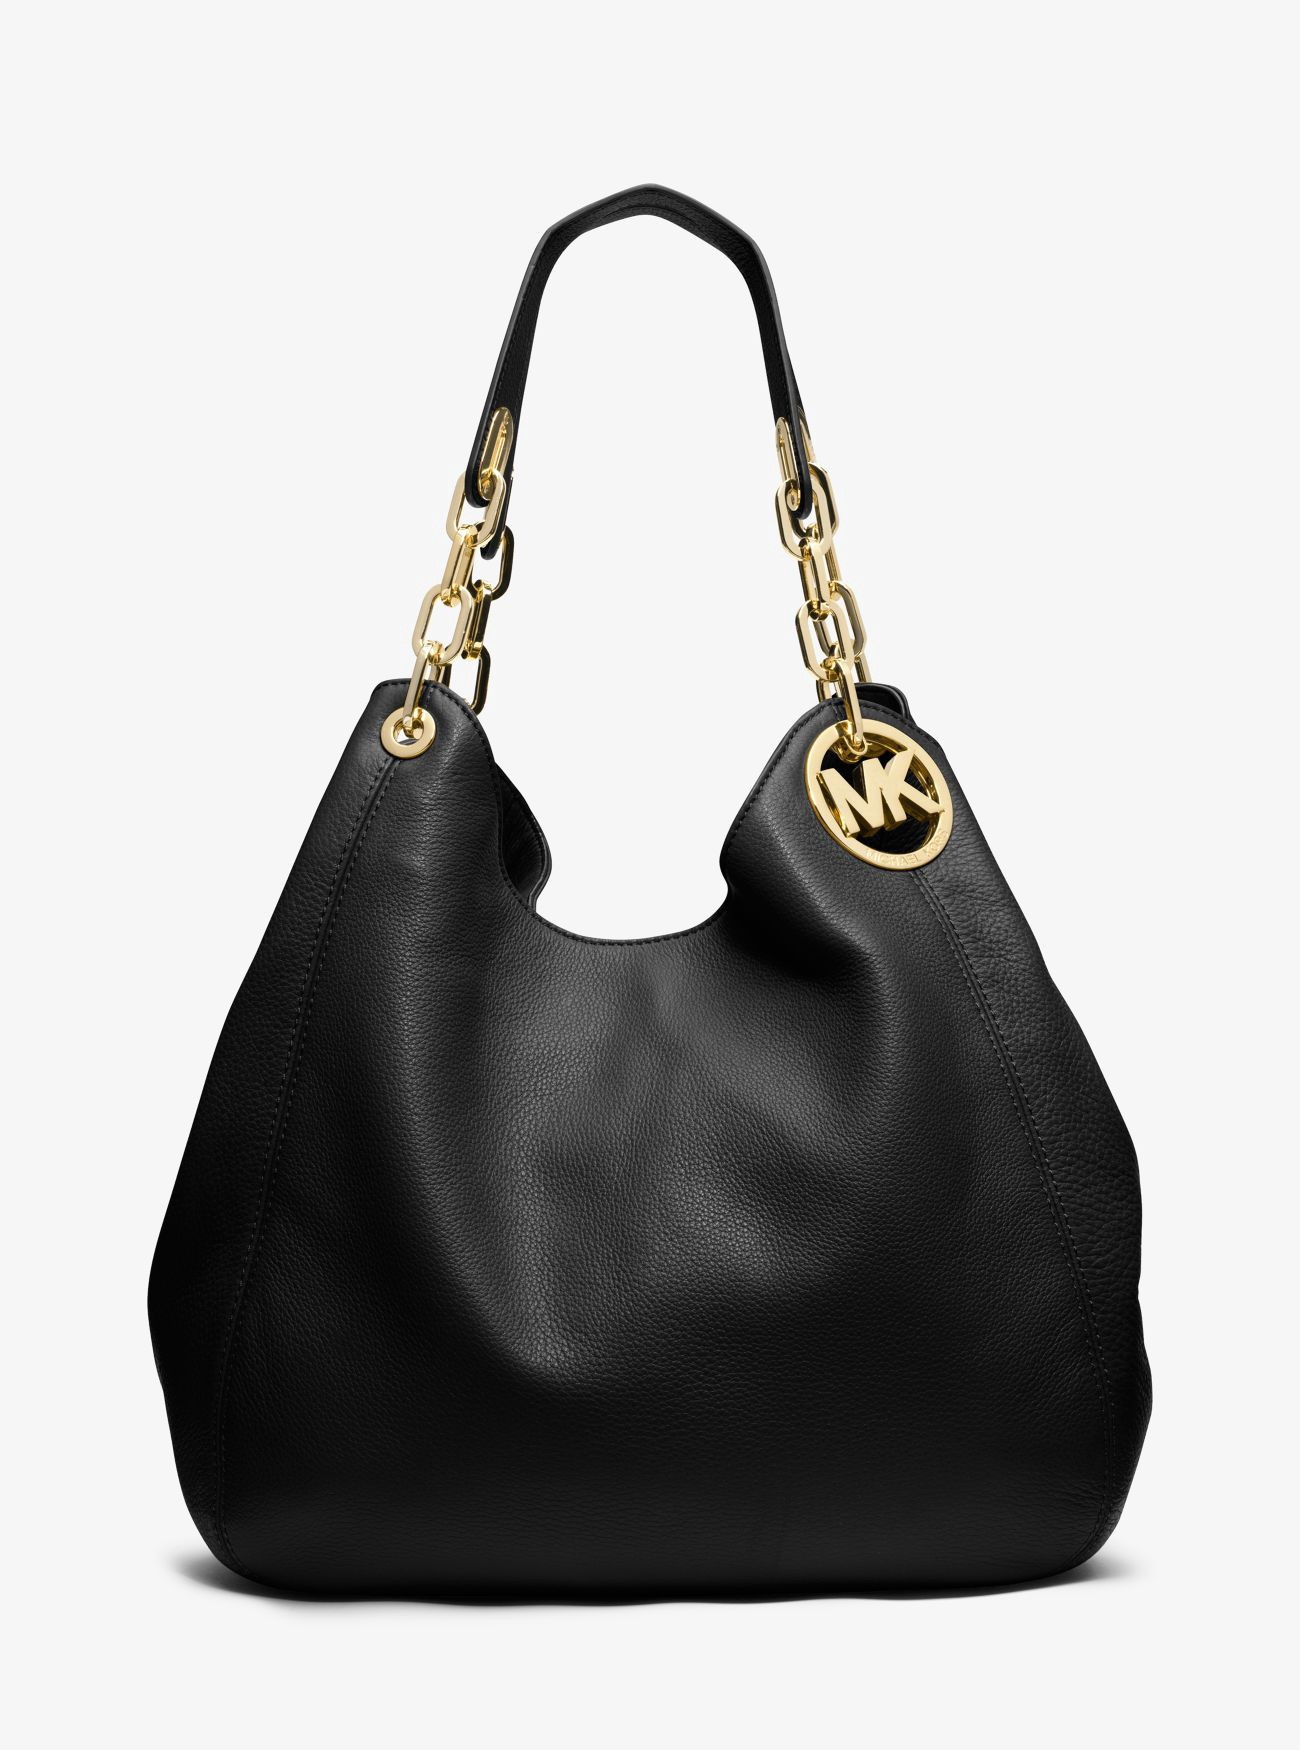 michael kors fulton large leather shoulder bag michaelkors bags rh pinterest com